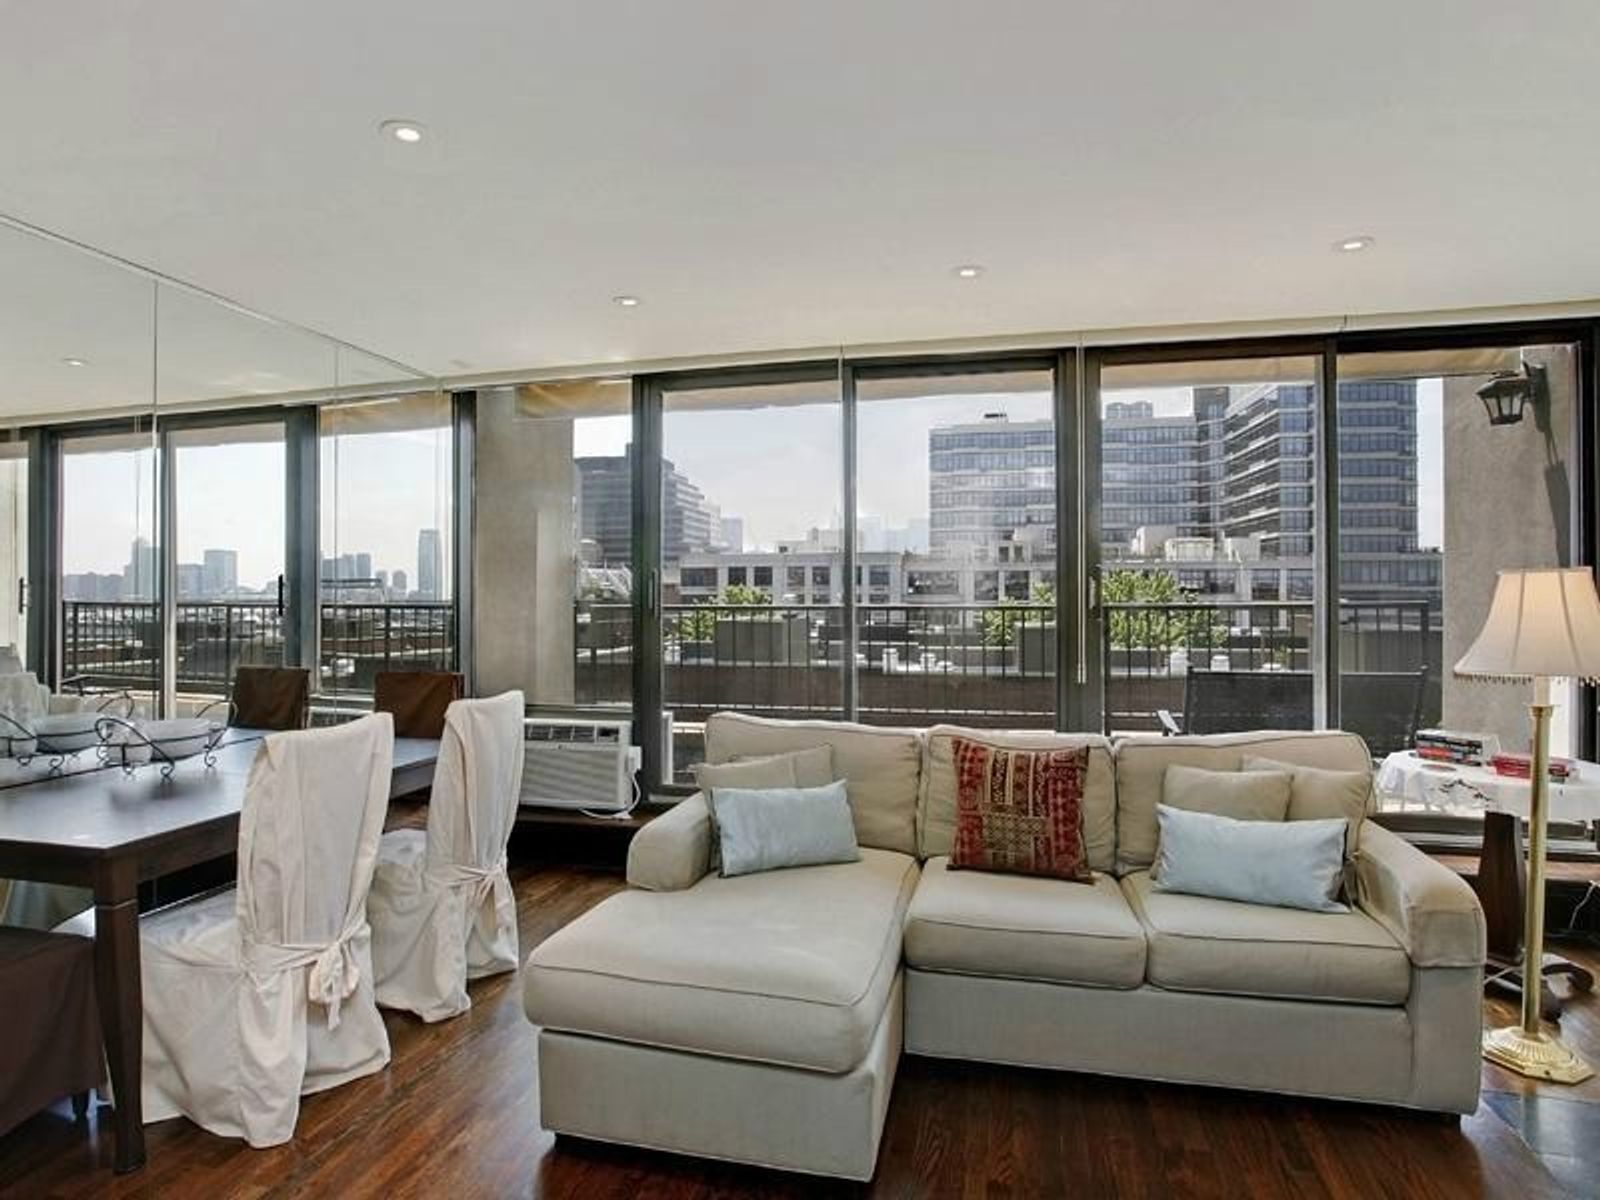 West Village Condo - 130 Barrow St , New York NY Condominium - New York City Real Estate